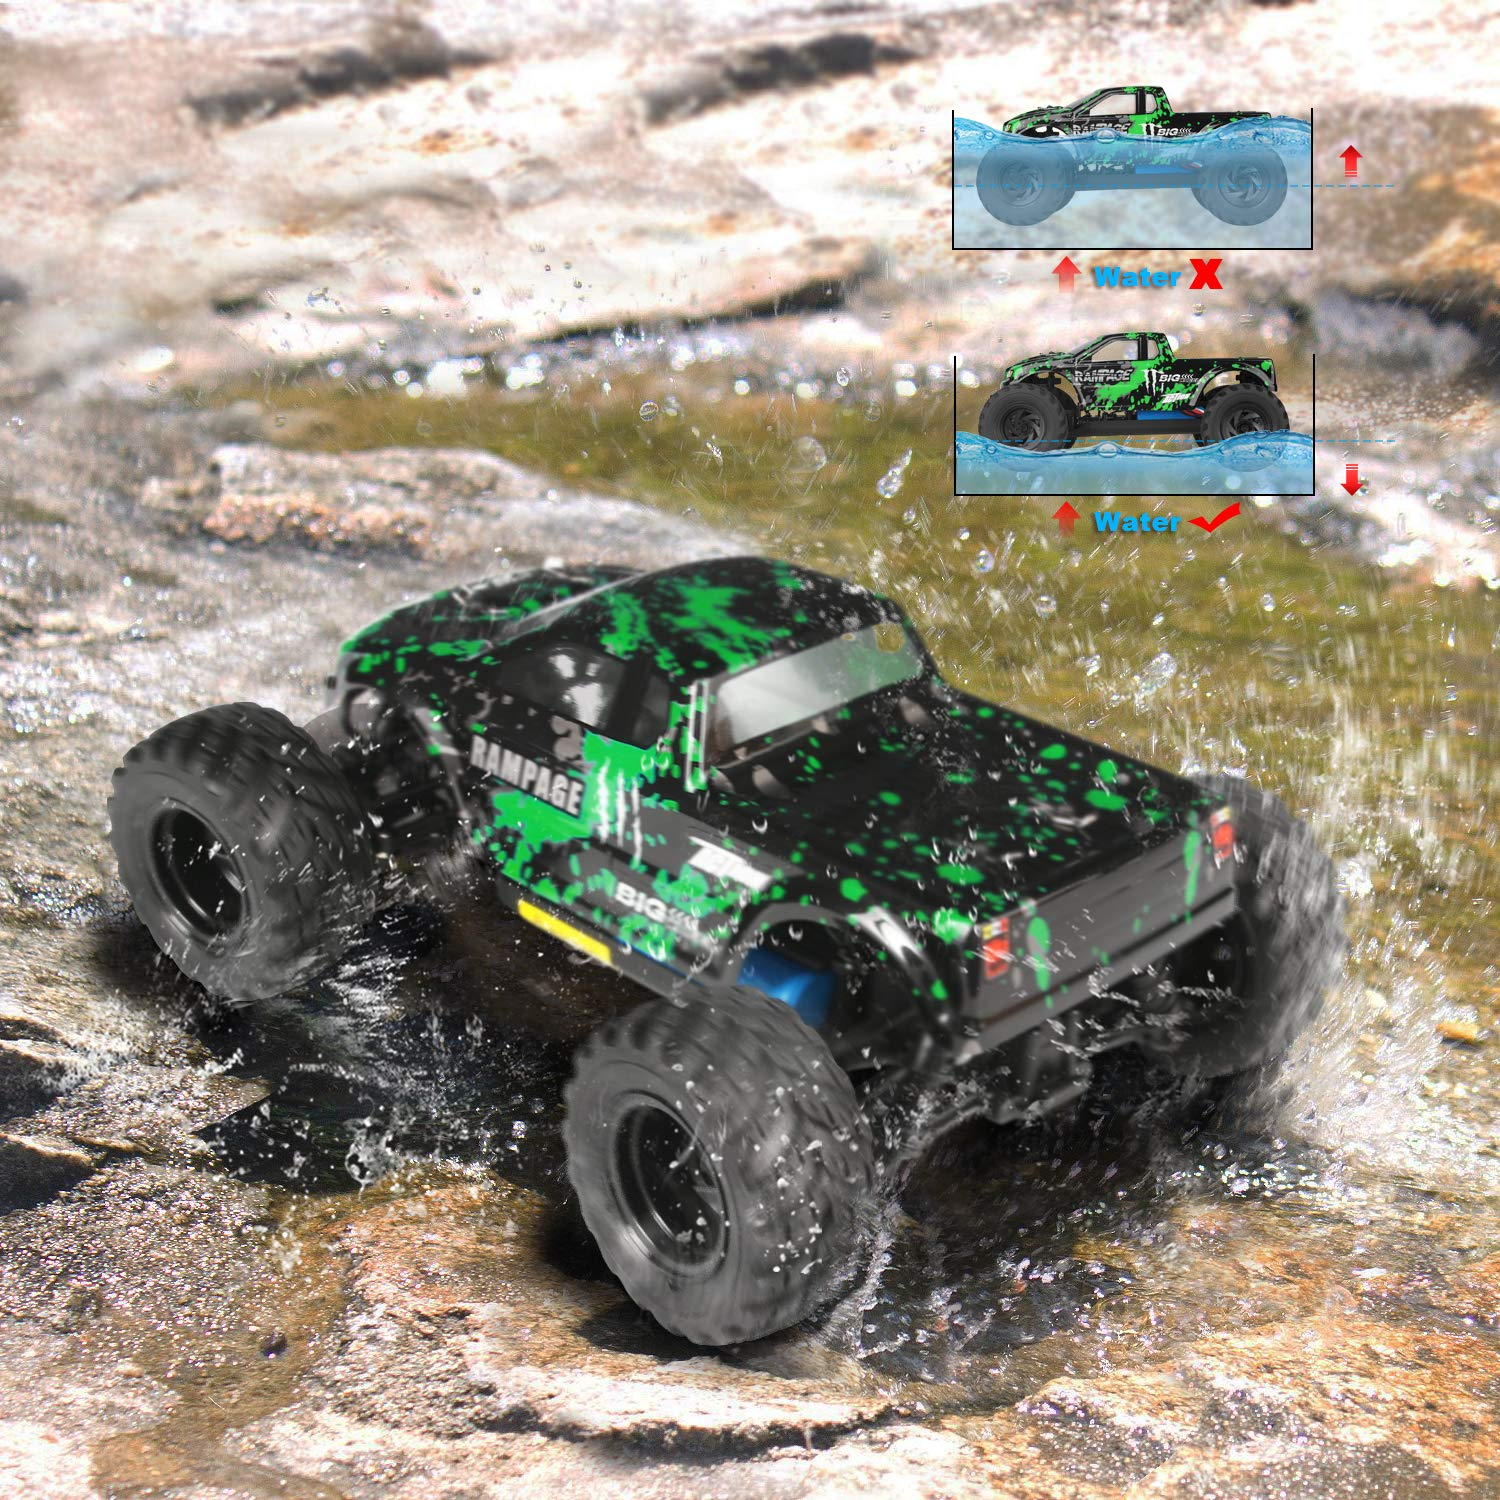 HBX 1:18 Scale All Terrain RC Car 18859E, 30+MPH High Speed 4WD Electric Vehicle with 2.4 GHz Radio Controller, Waterproof Off-Road Truck Included Battery and Charger by BBM HOBBY (Image #4)